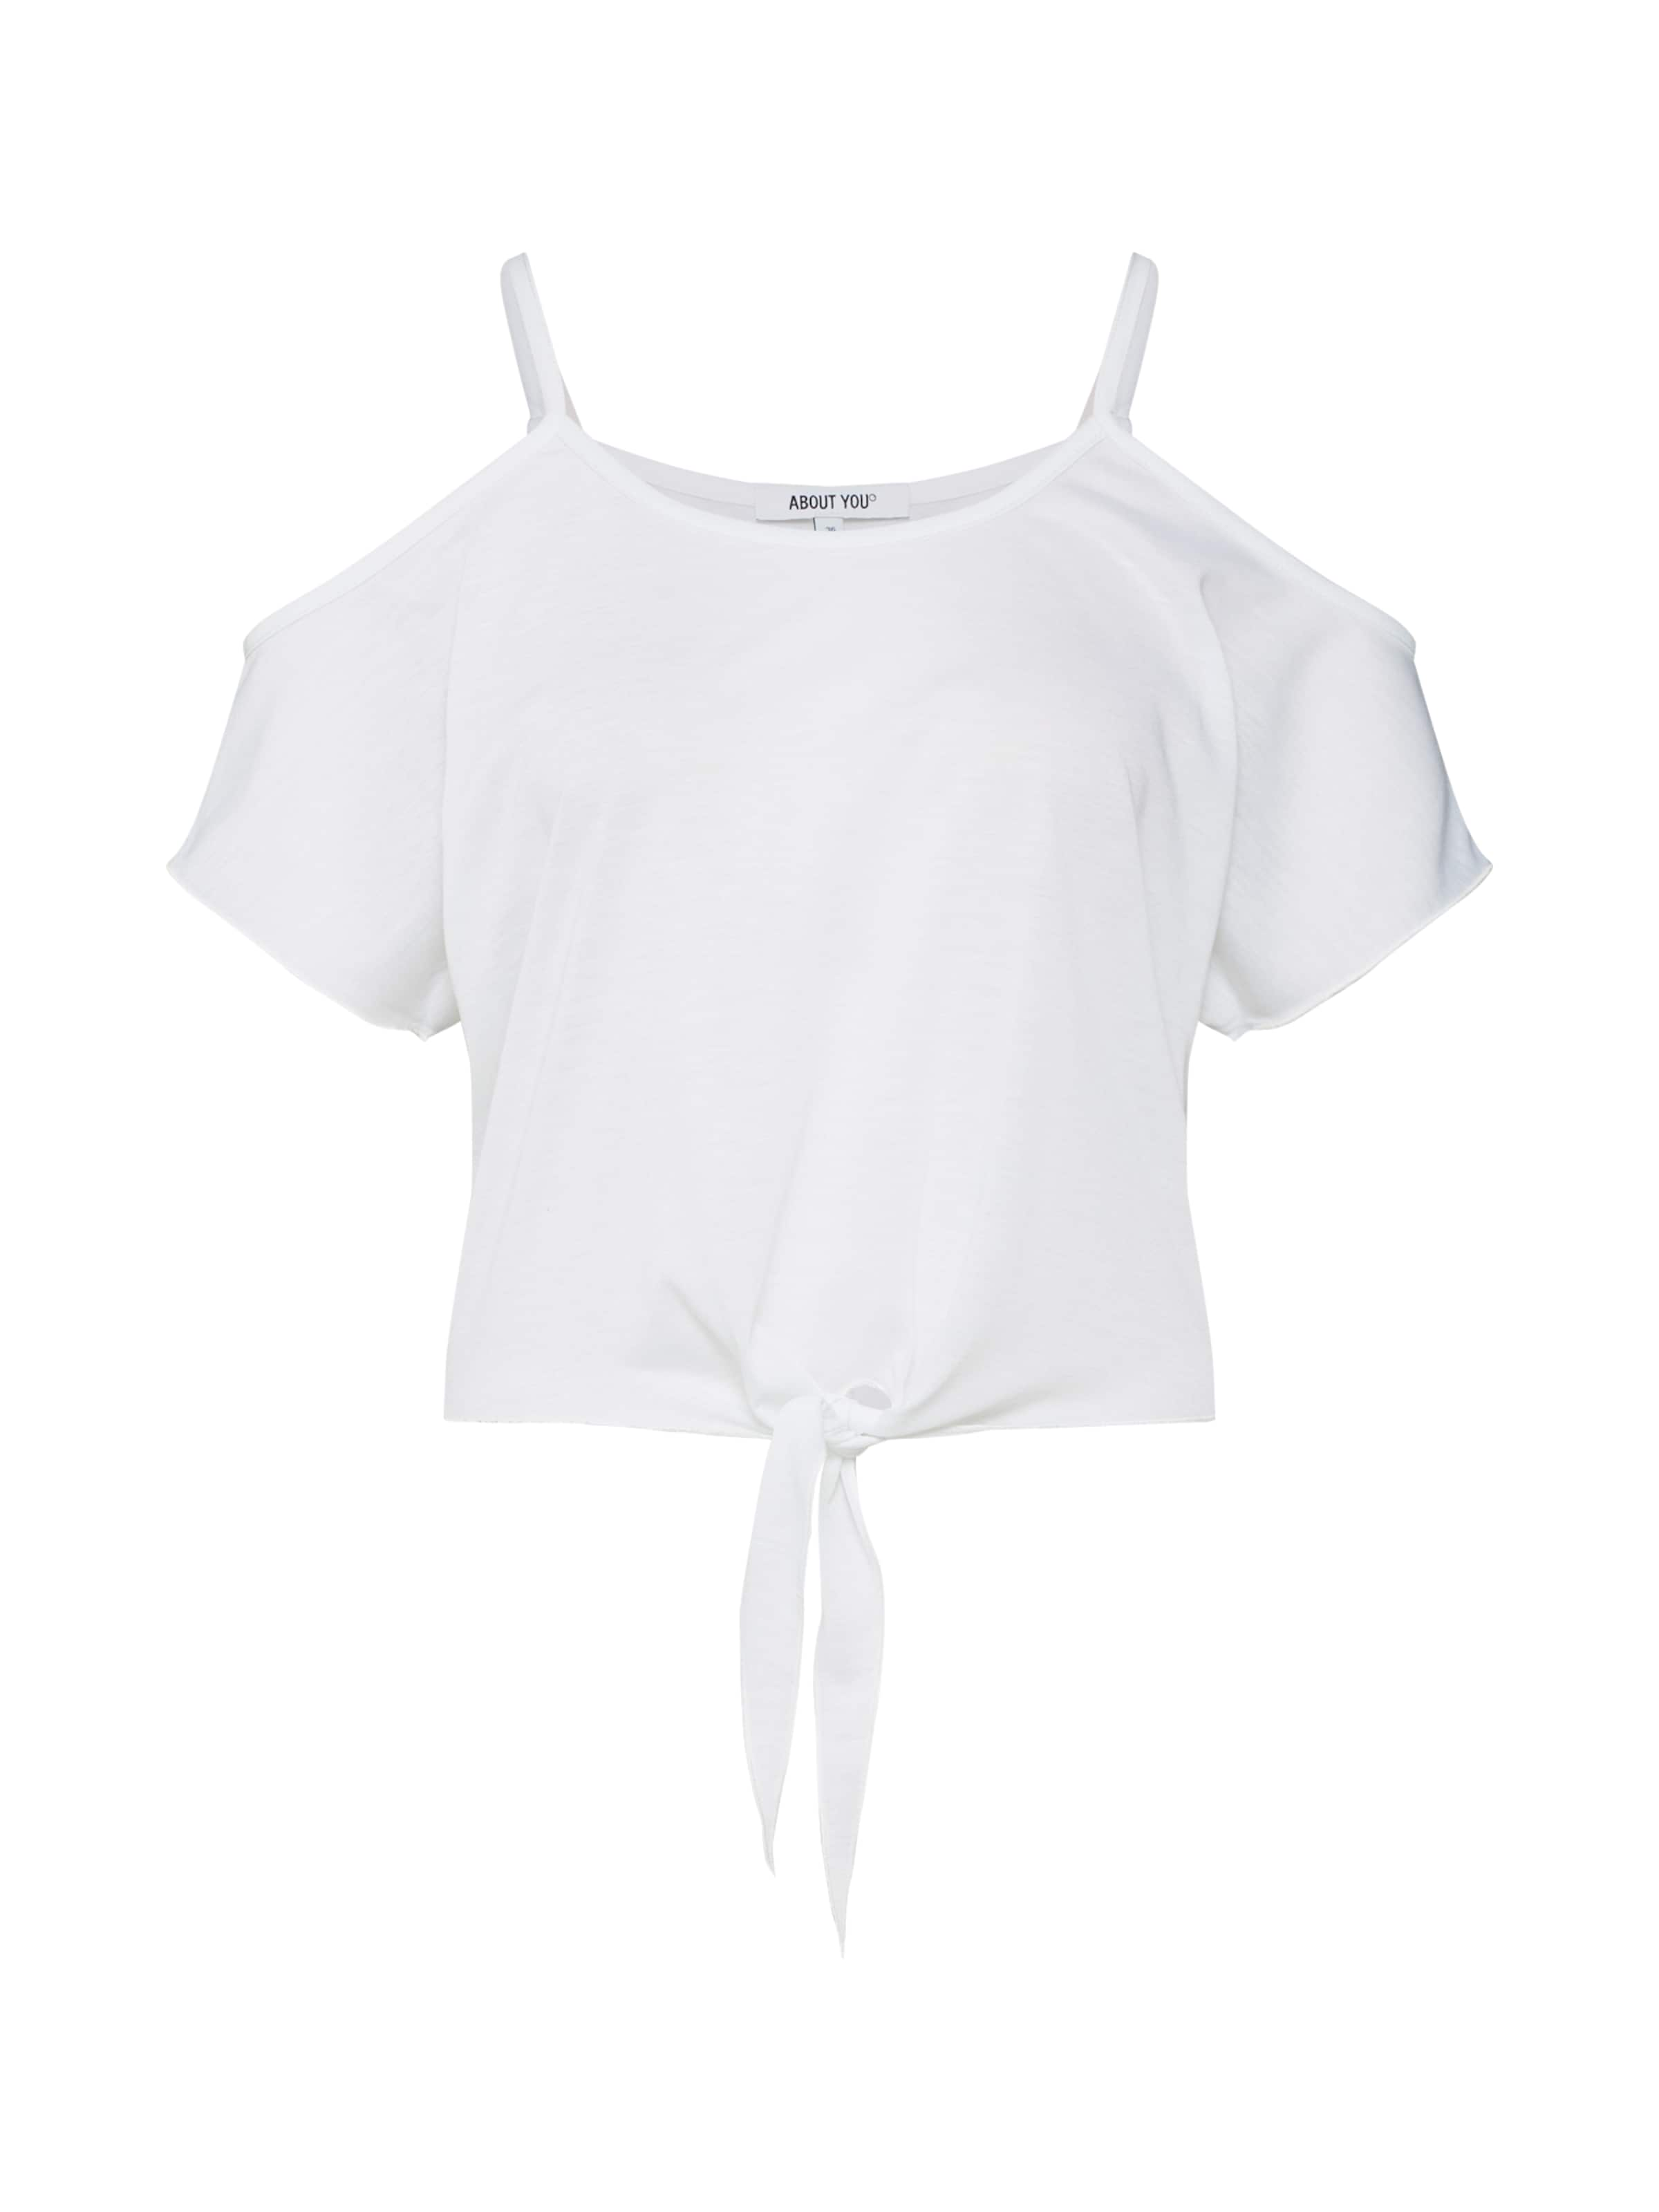 shirt Blanc T 'tessa' About En You nONvm80w